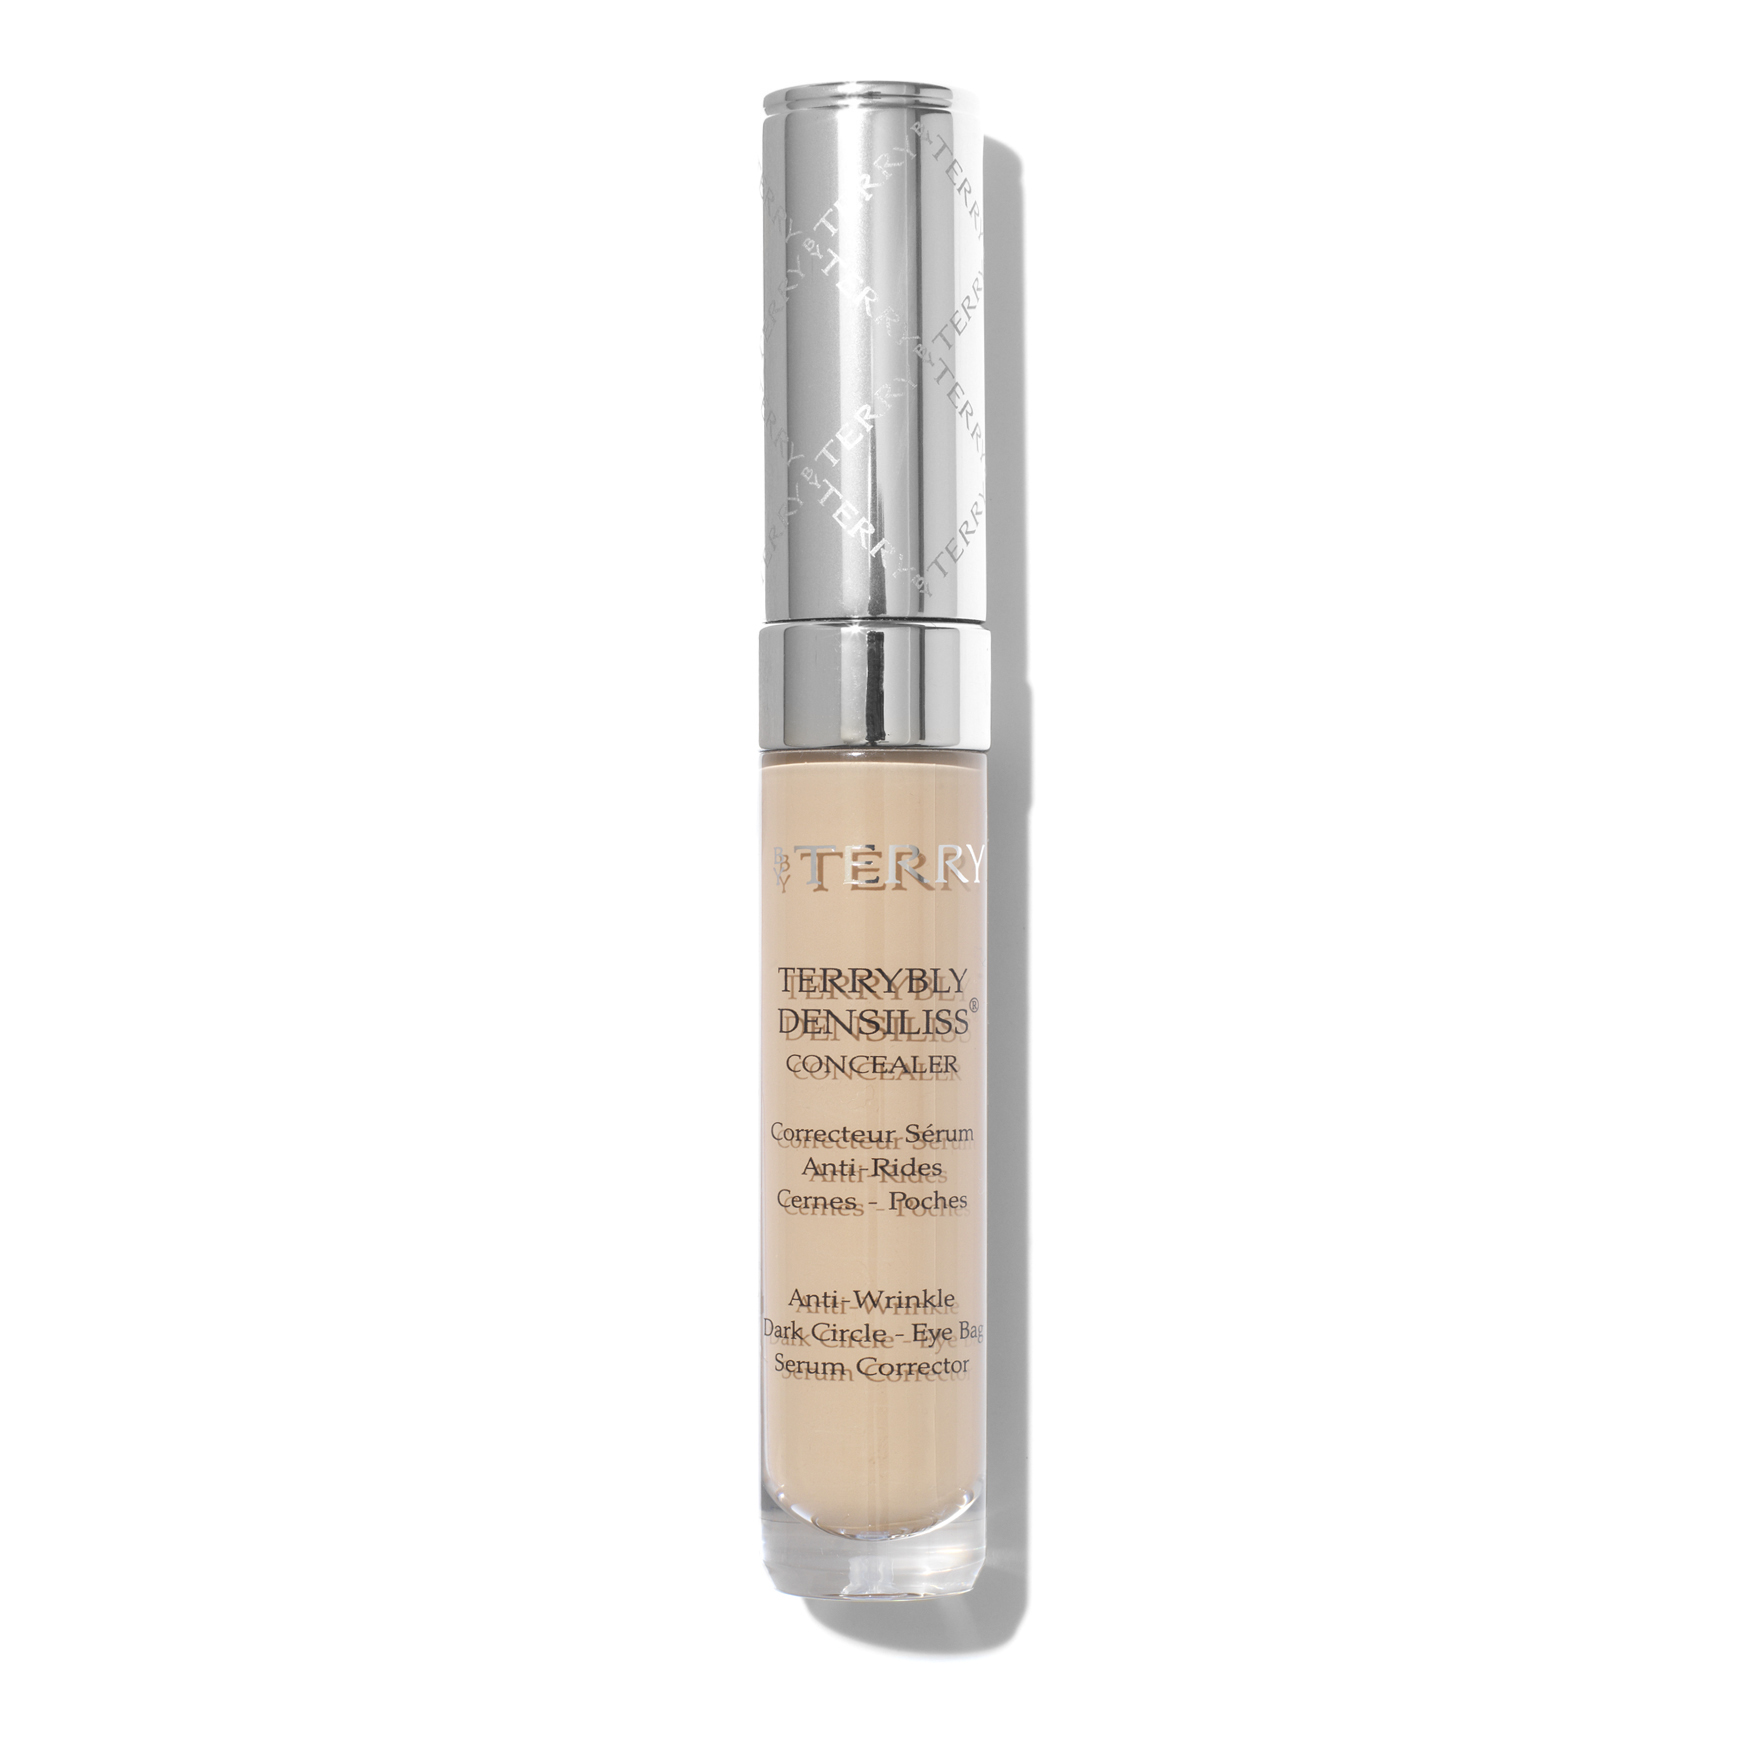 Image result for by terry densiliss concealer